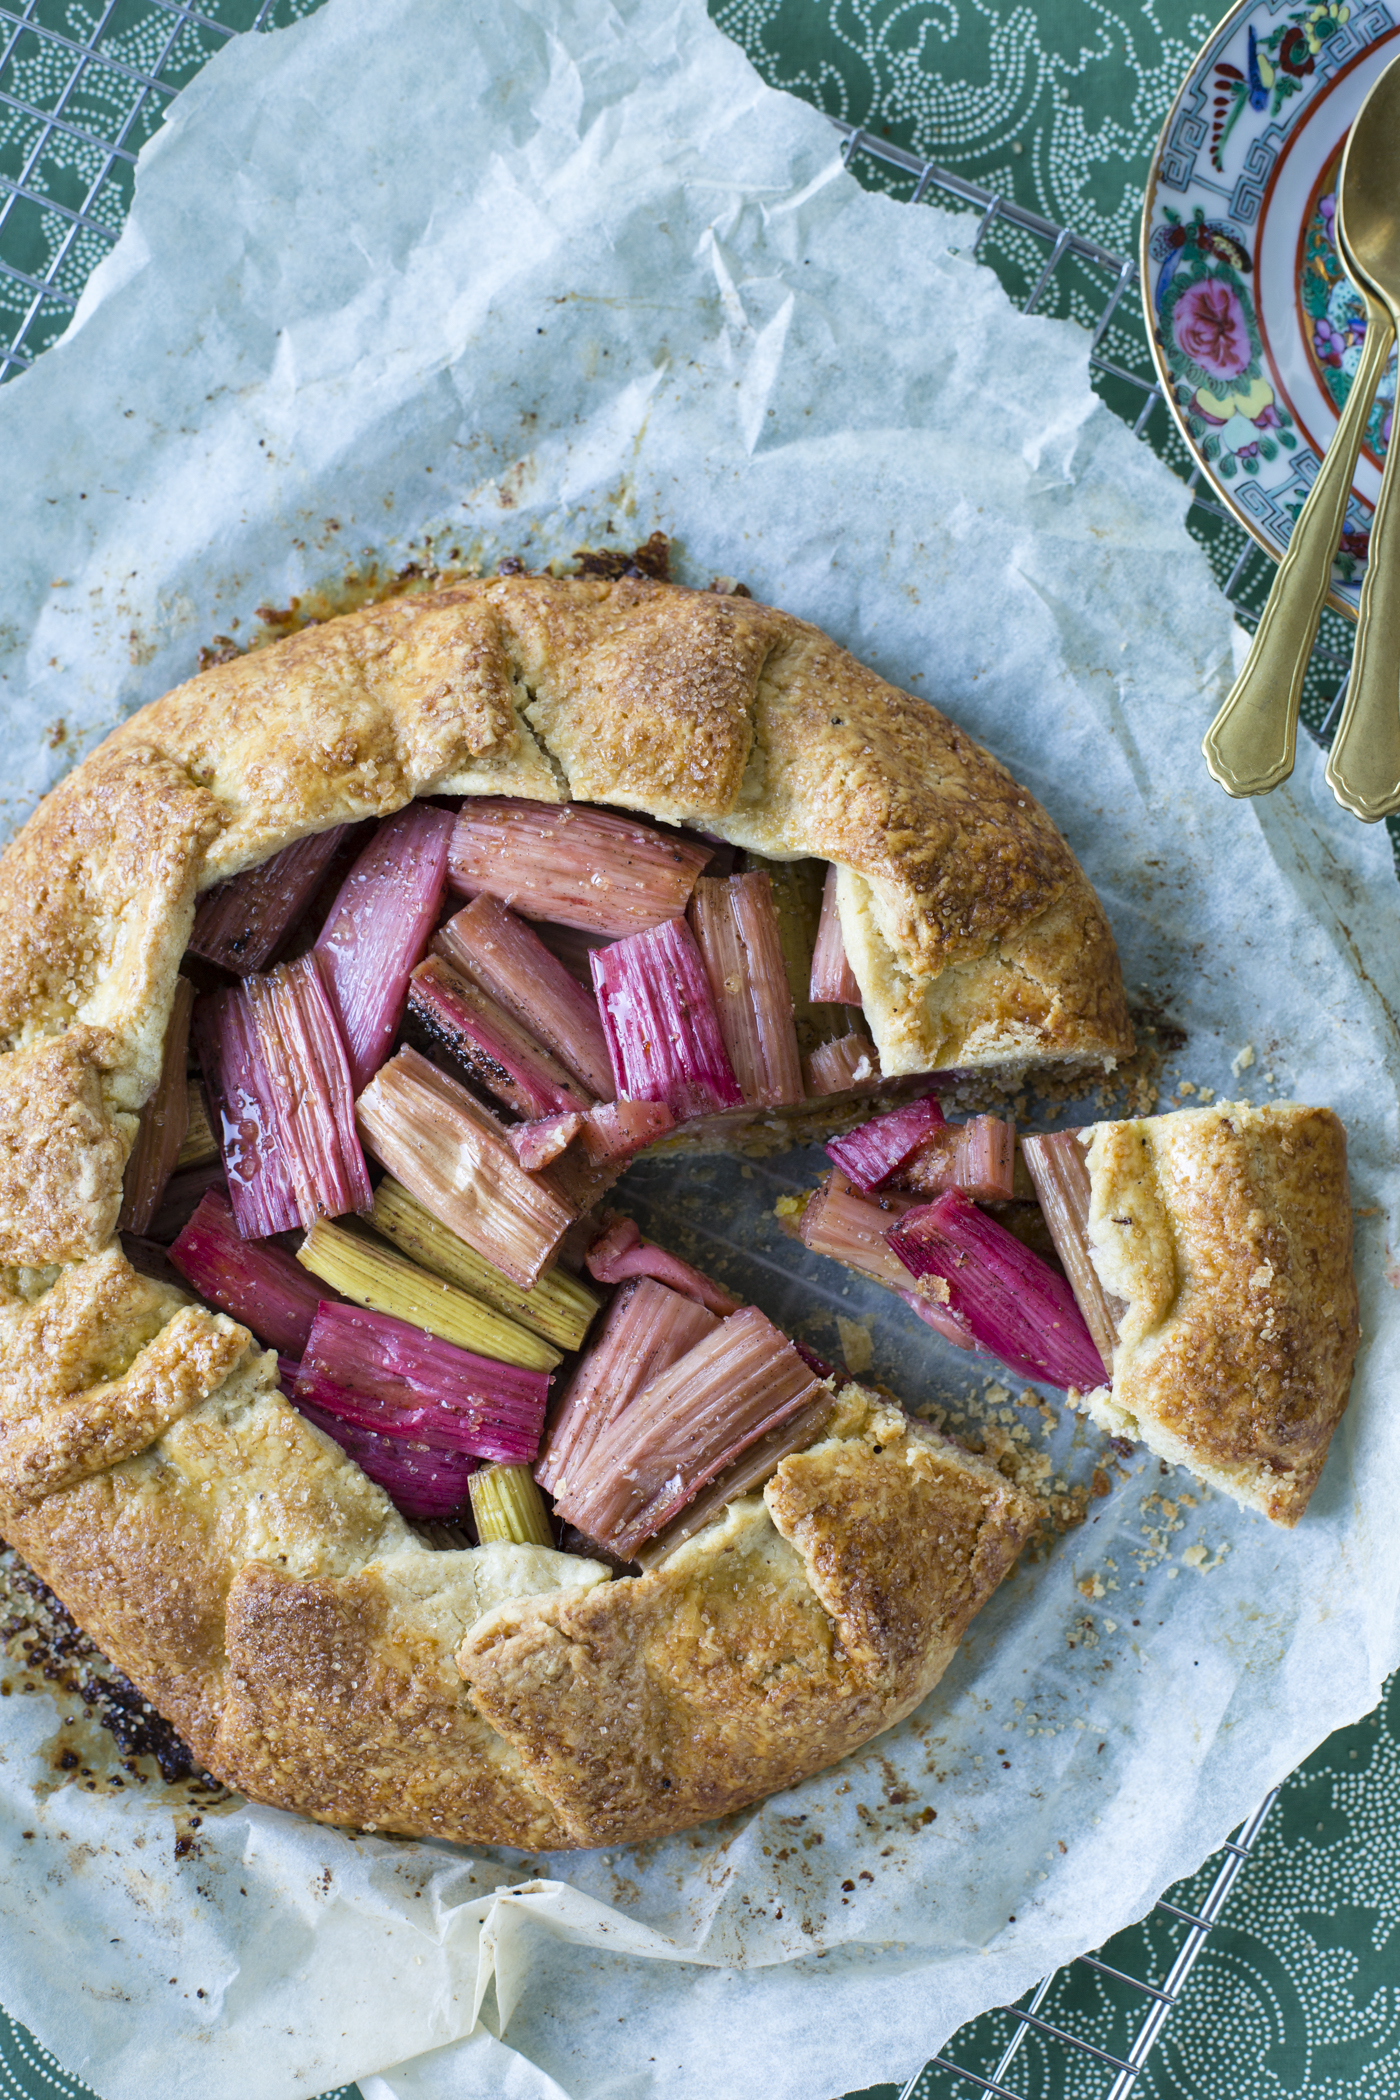 Rhubarb galette is easy to make and looks rustic